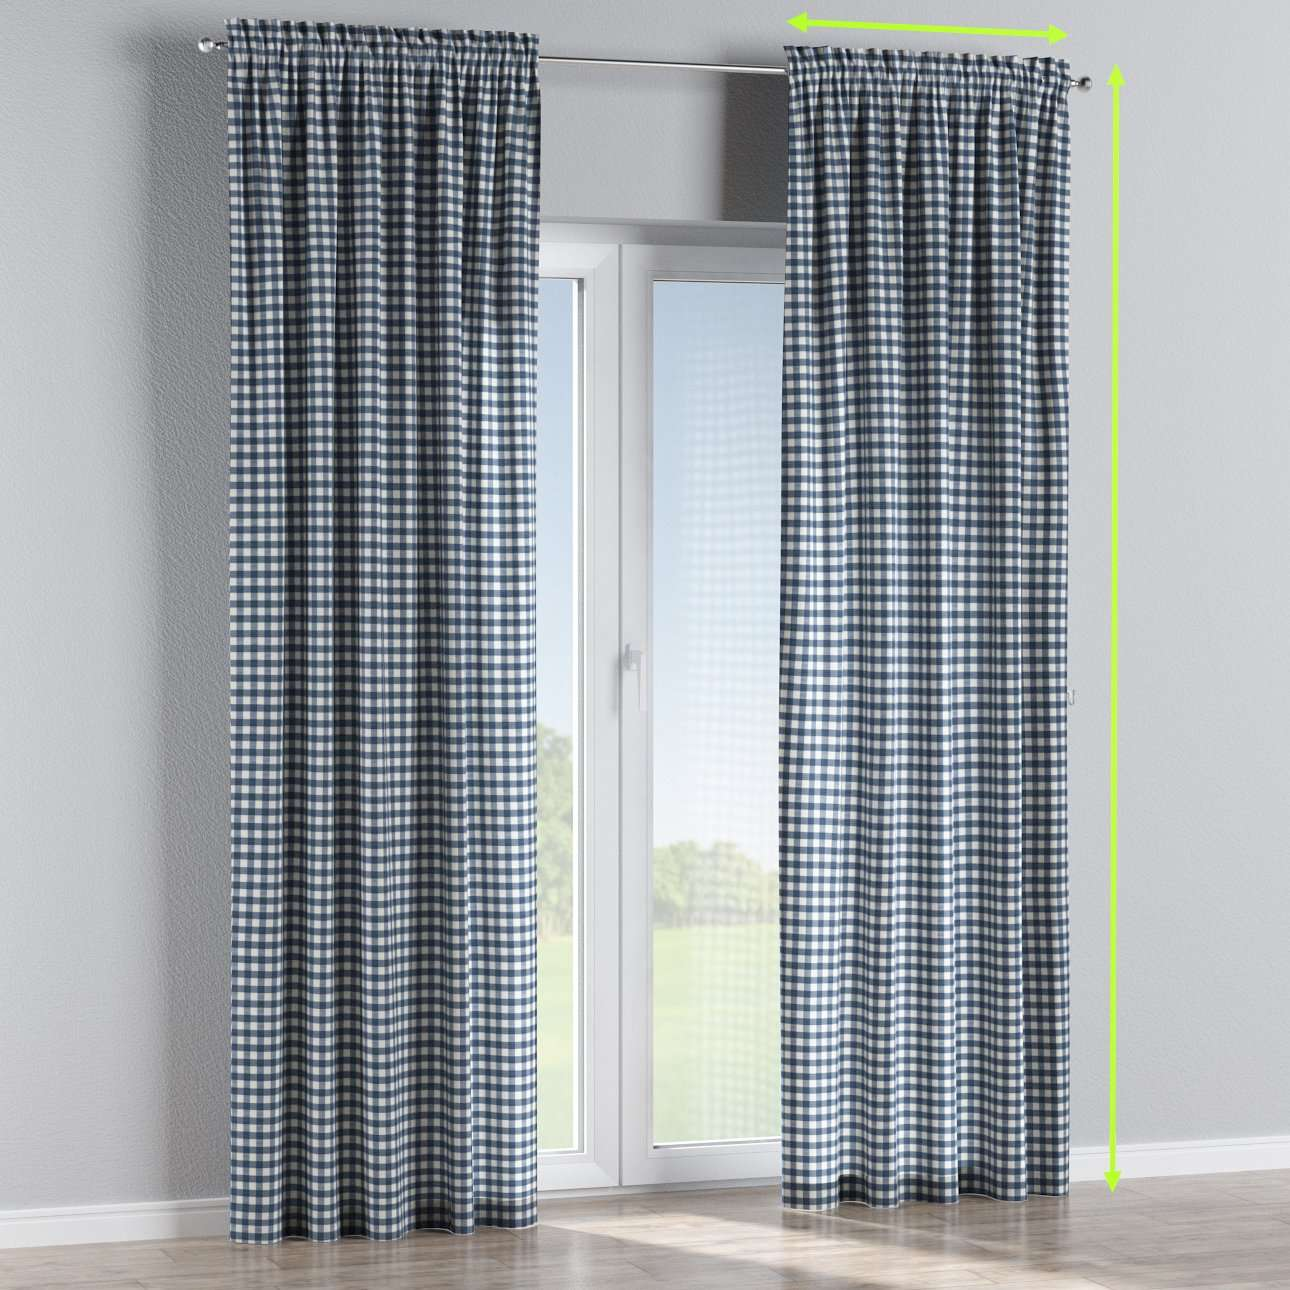 Slot and frill lined curtains in collection Quadro, fabric: 136-01